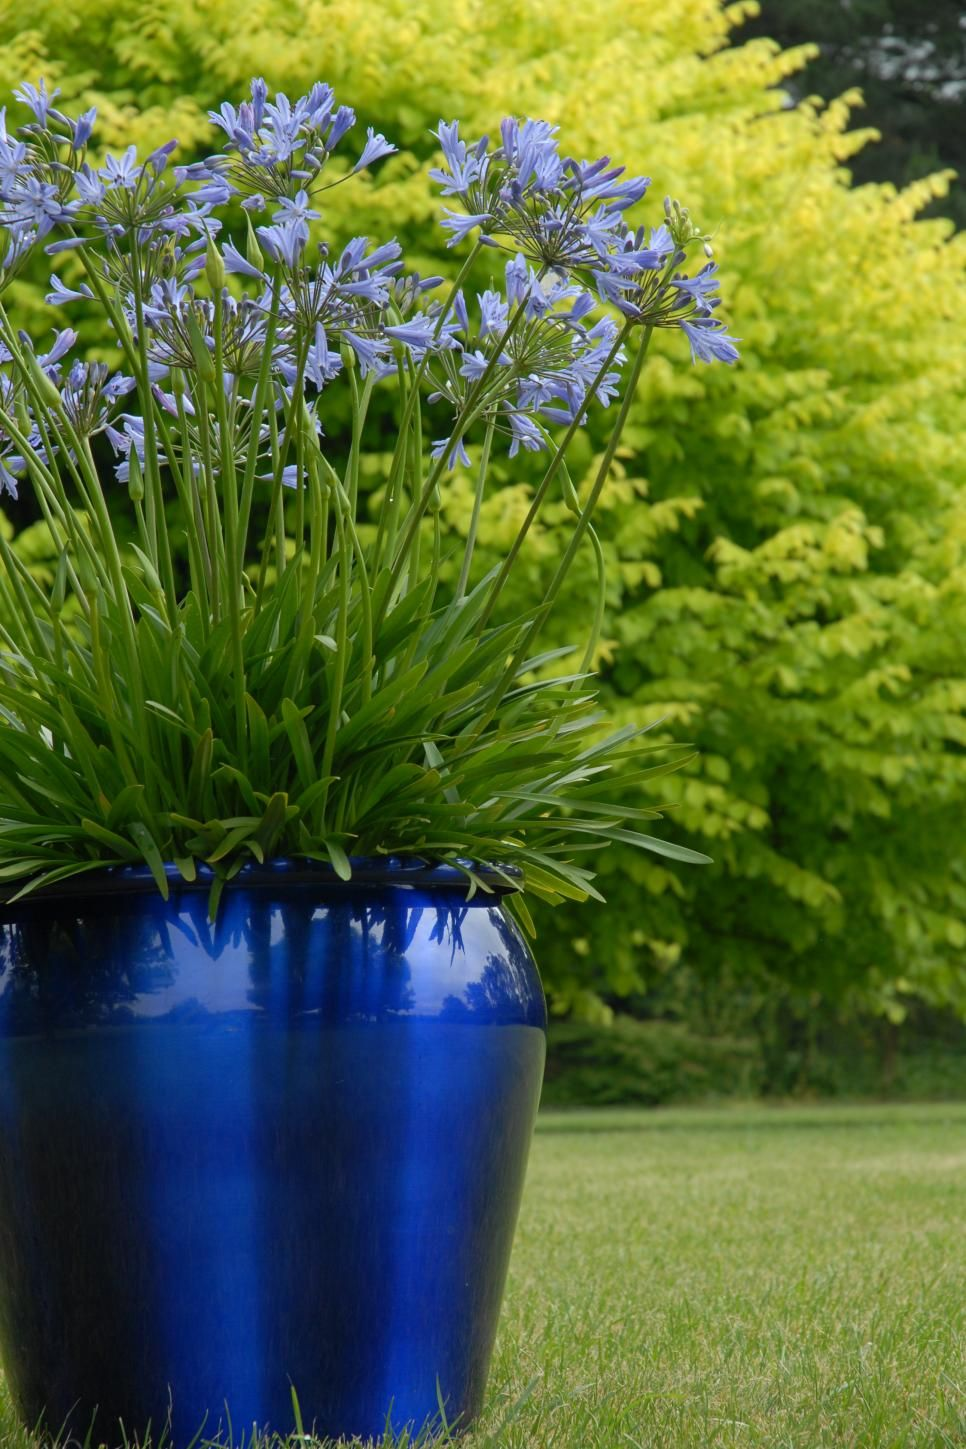 How To Plant Agapanthus And Agapanthus Care Agapanthus Plant Plants For Small Gardens Plants